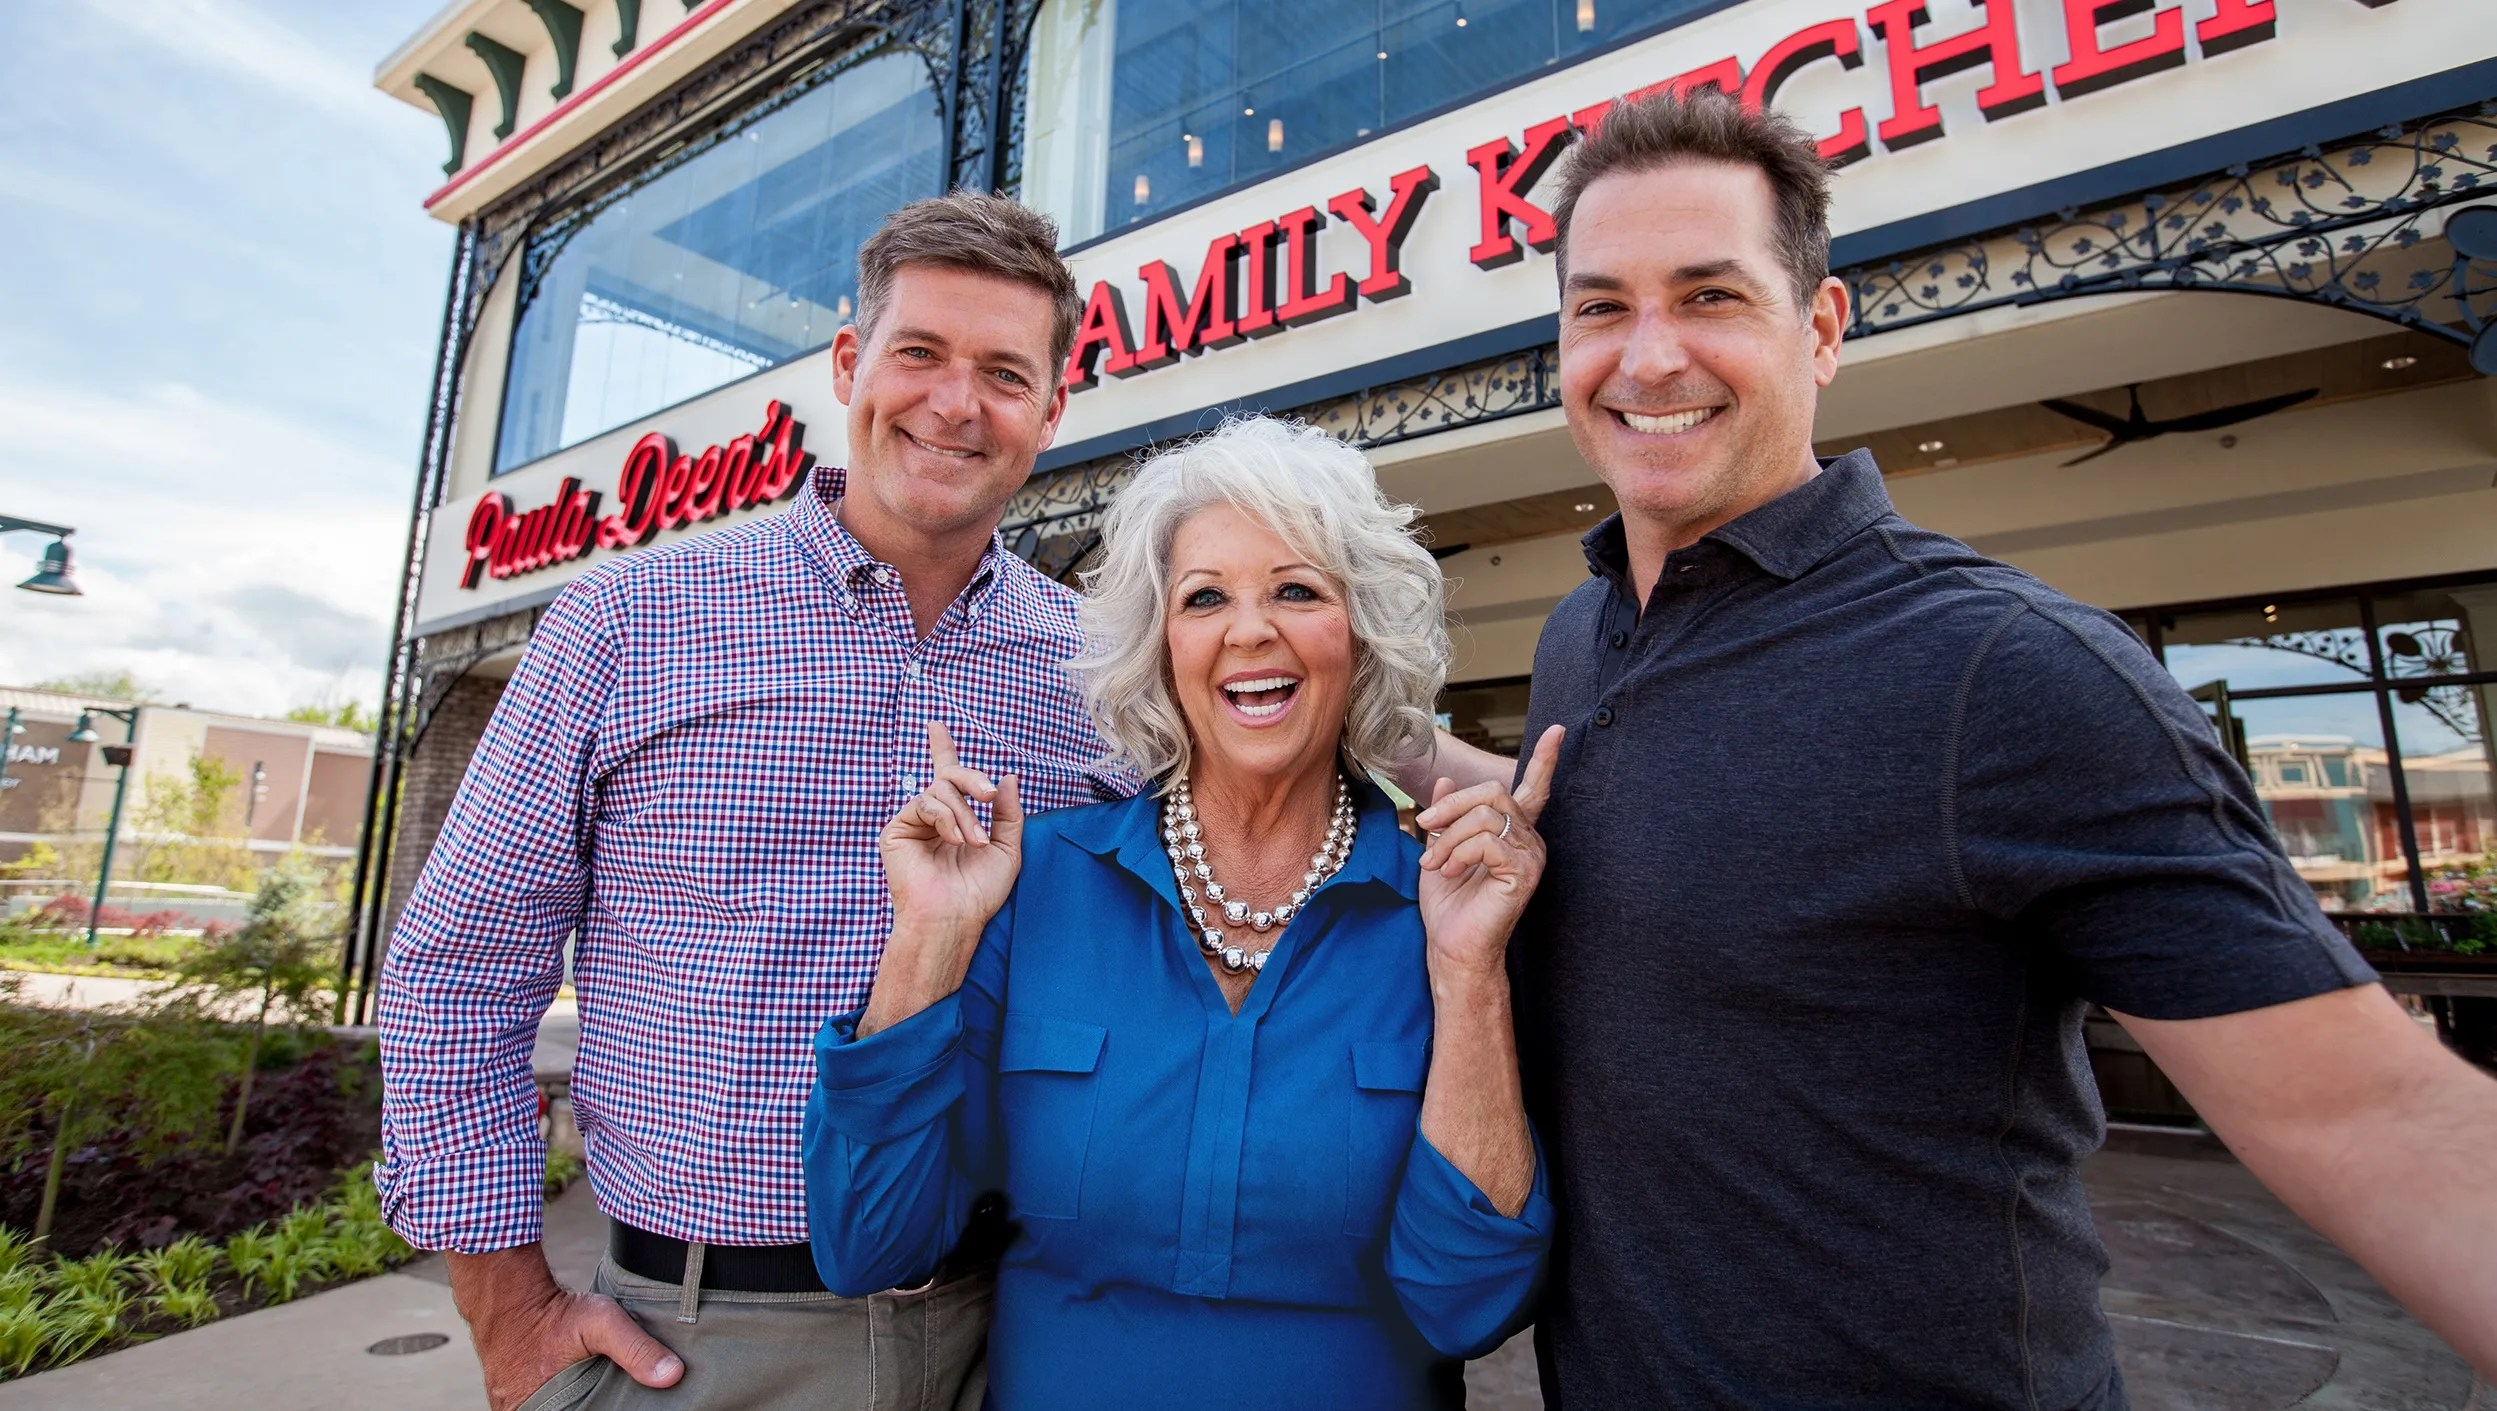 paula deen kitchen beater employees at s family in pigeon forge not fired says spokesman